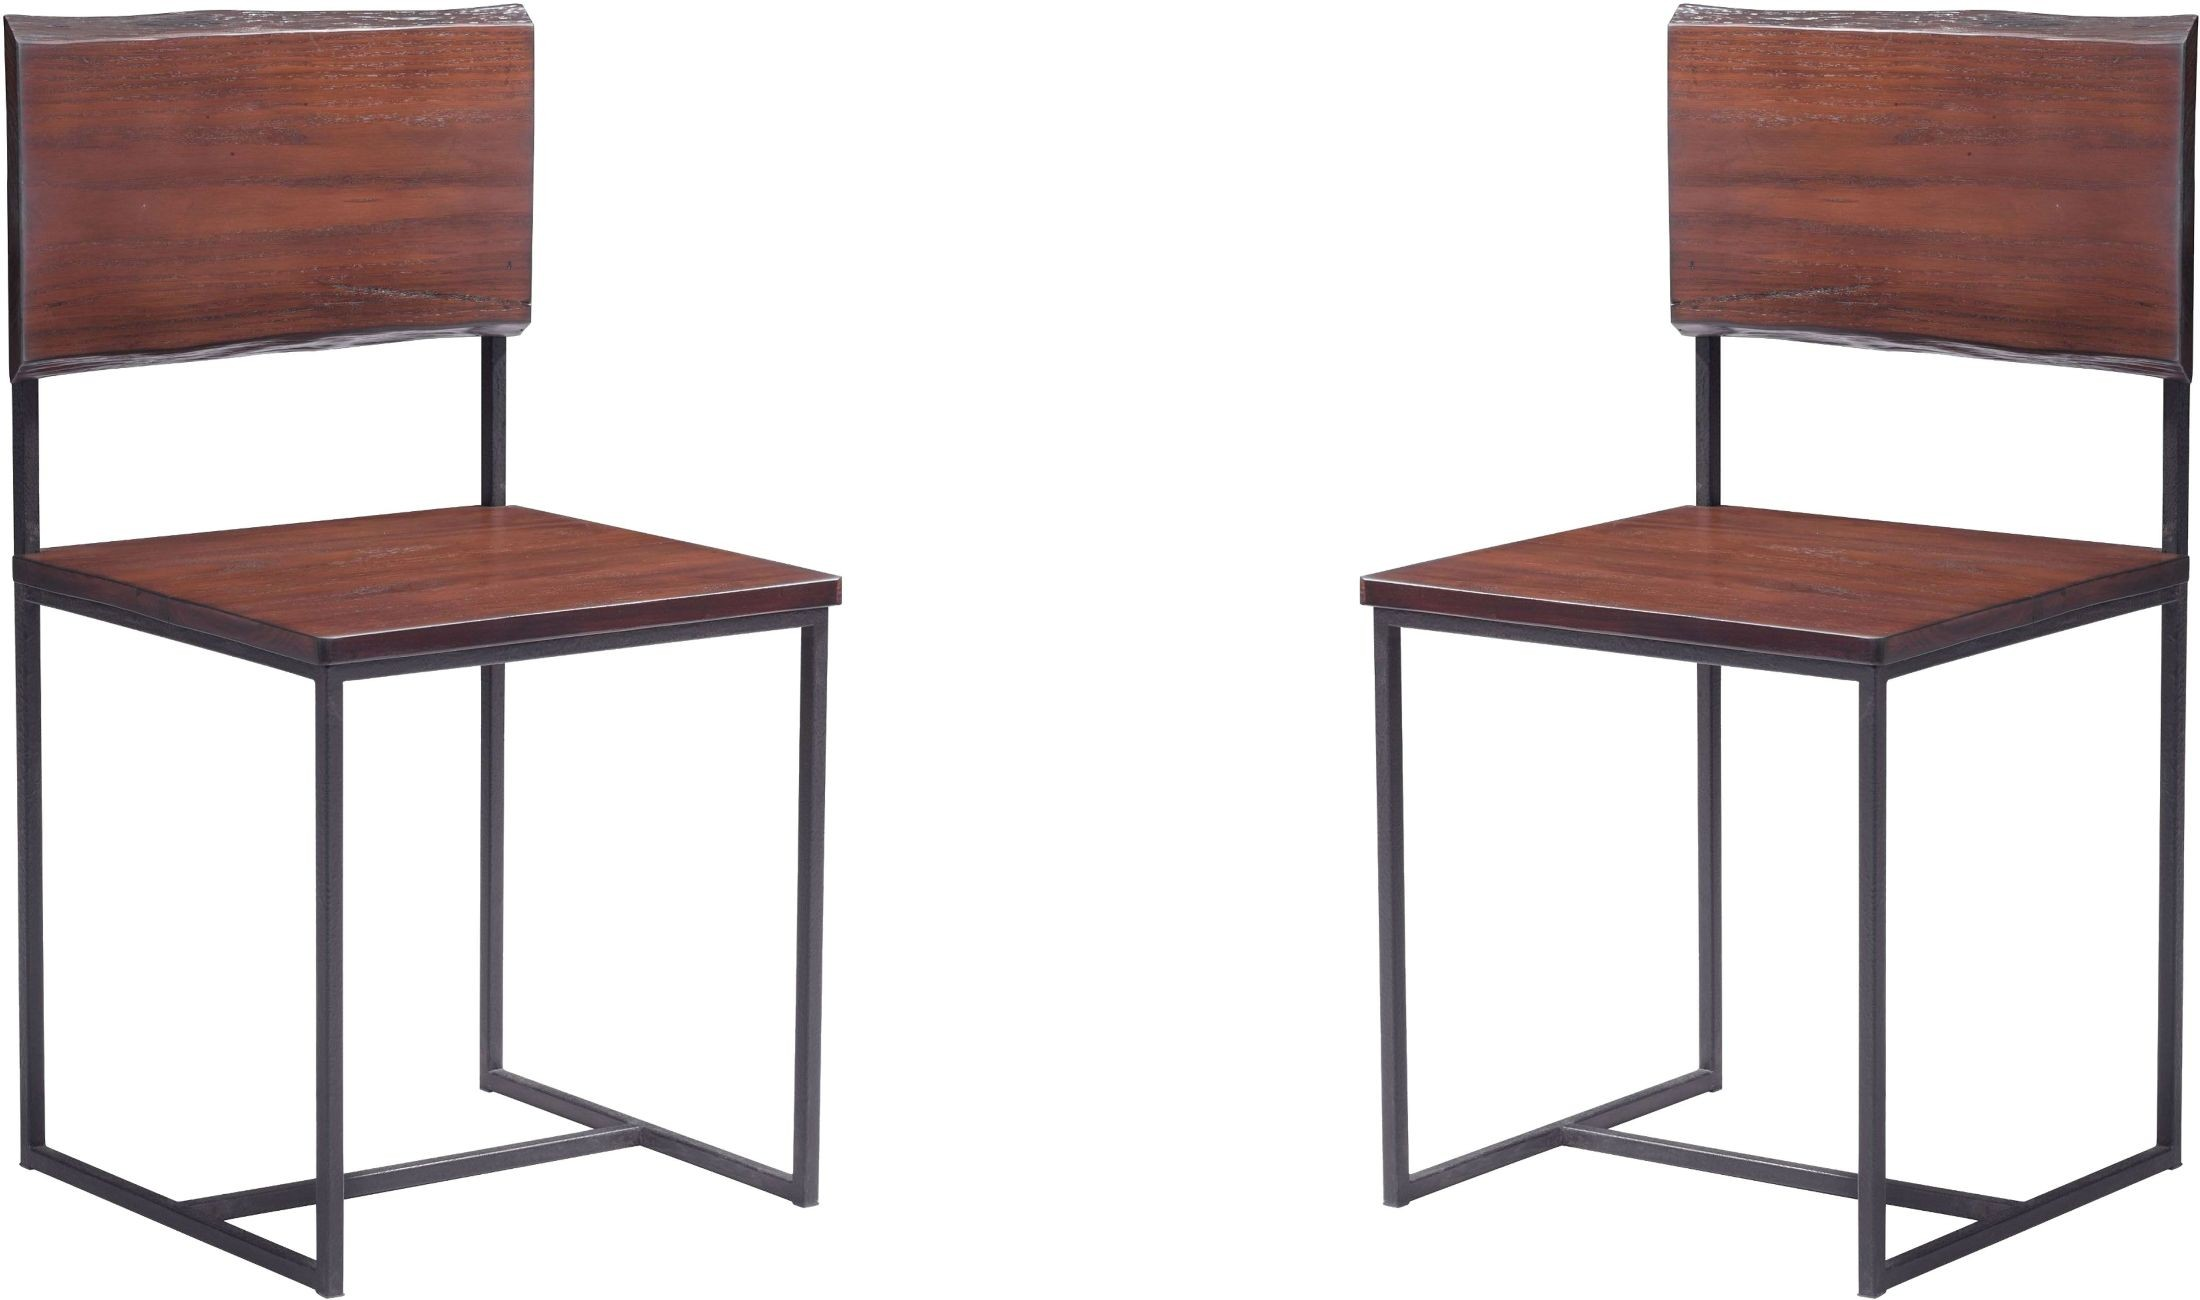 Distressed White Oak Dining Chairs: Papillion Distressed Cherry Oak Dining Chair Set Of 2 From